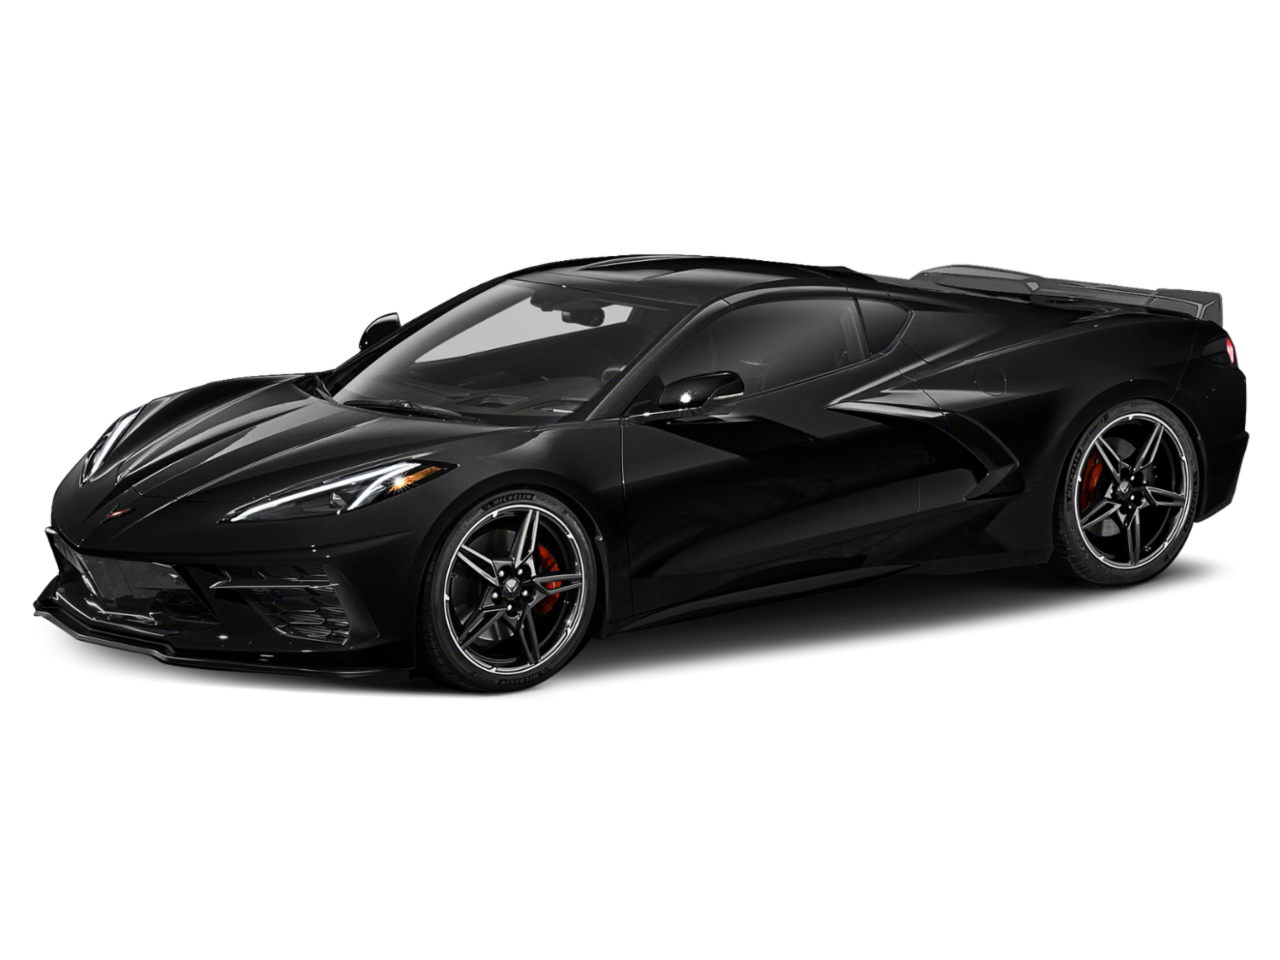 Chevrolet 2020 Corvette 3LT